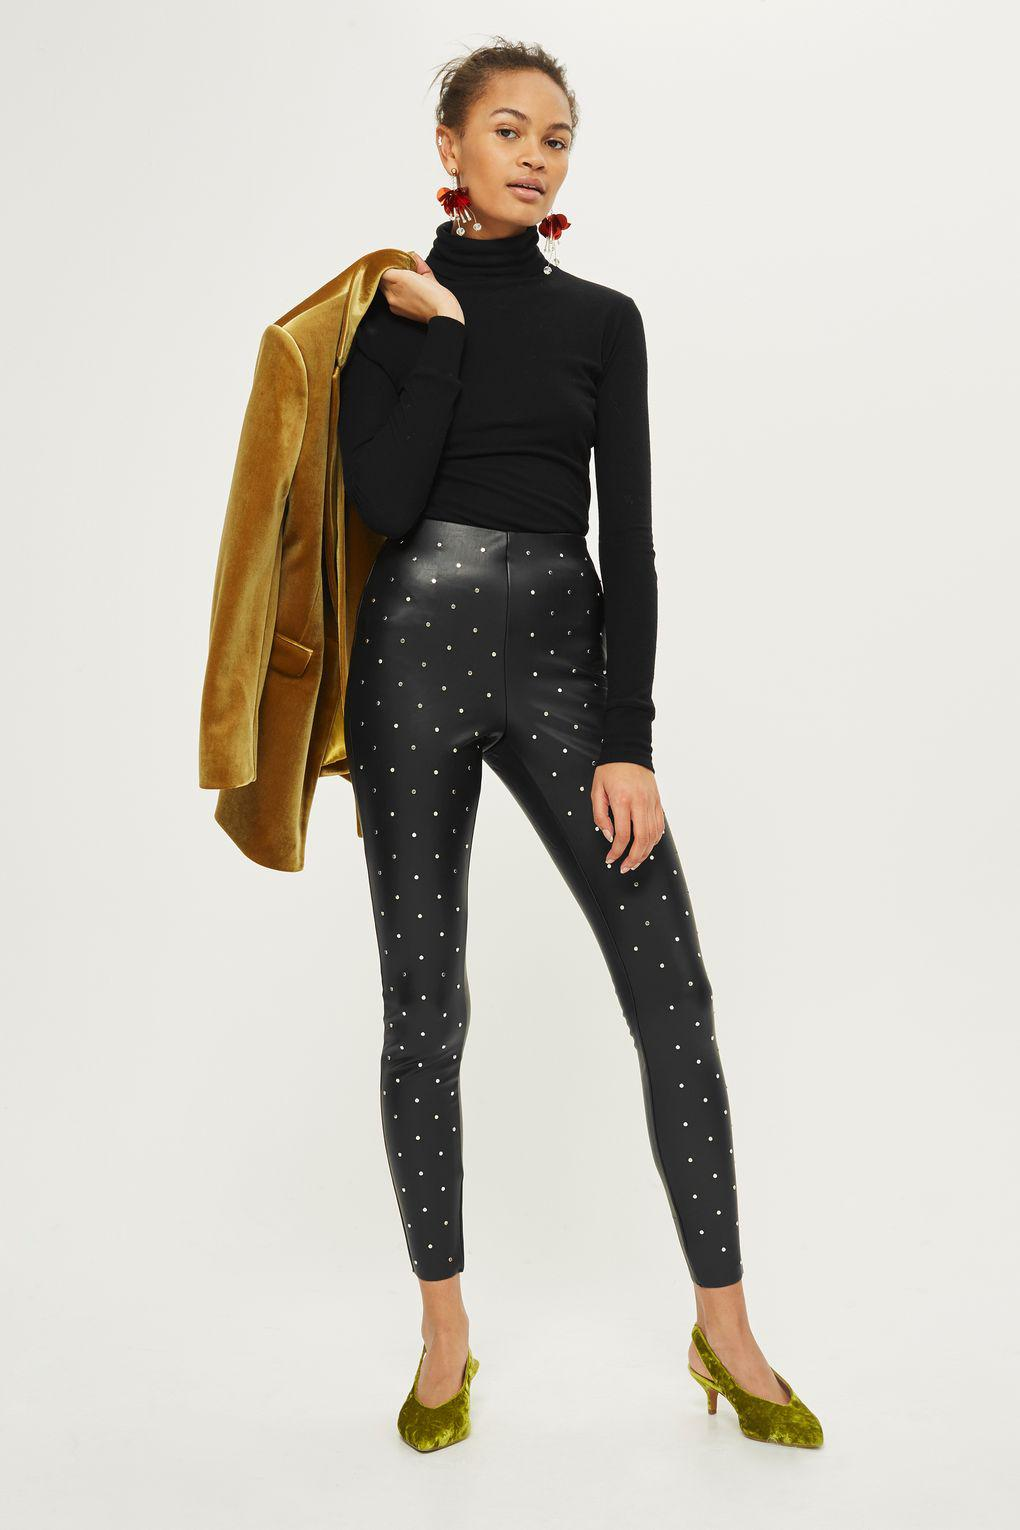 c3ad7b1f7a1f5f TOPSHOP Studded Faux Leather Trousers in Black - Lyst